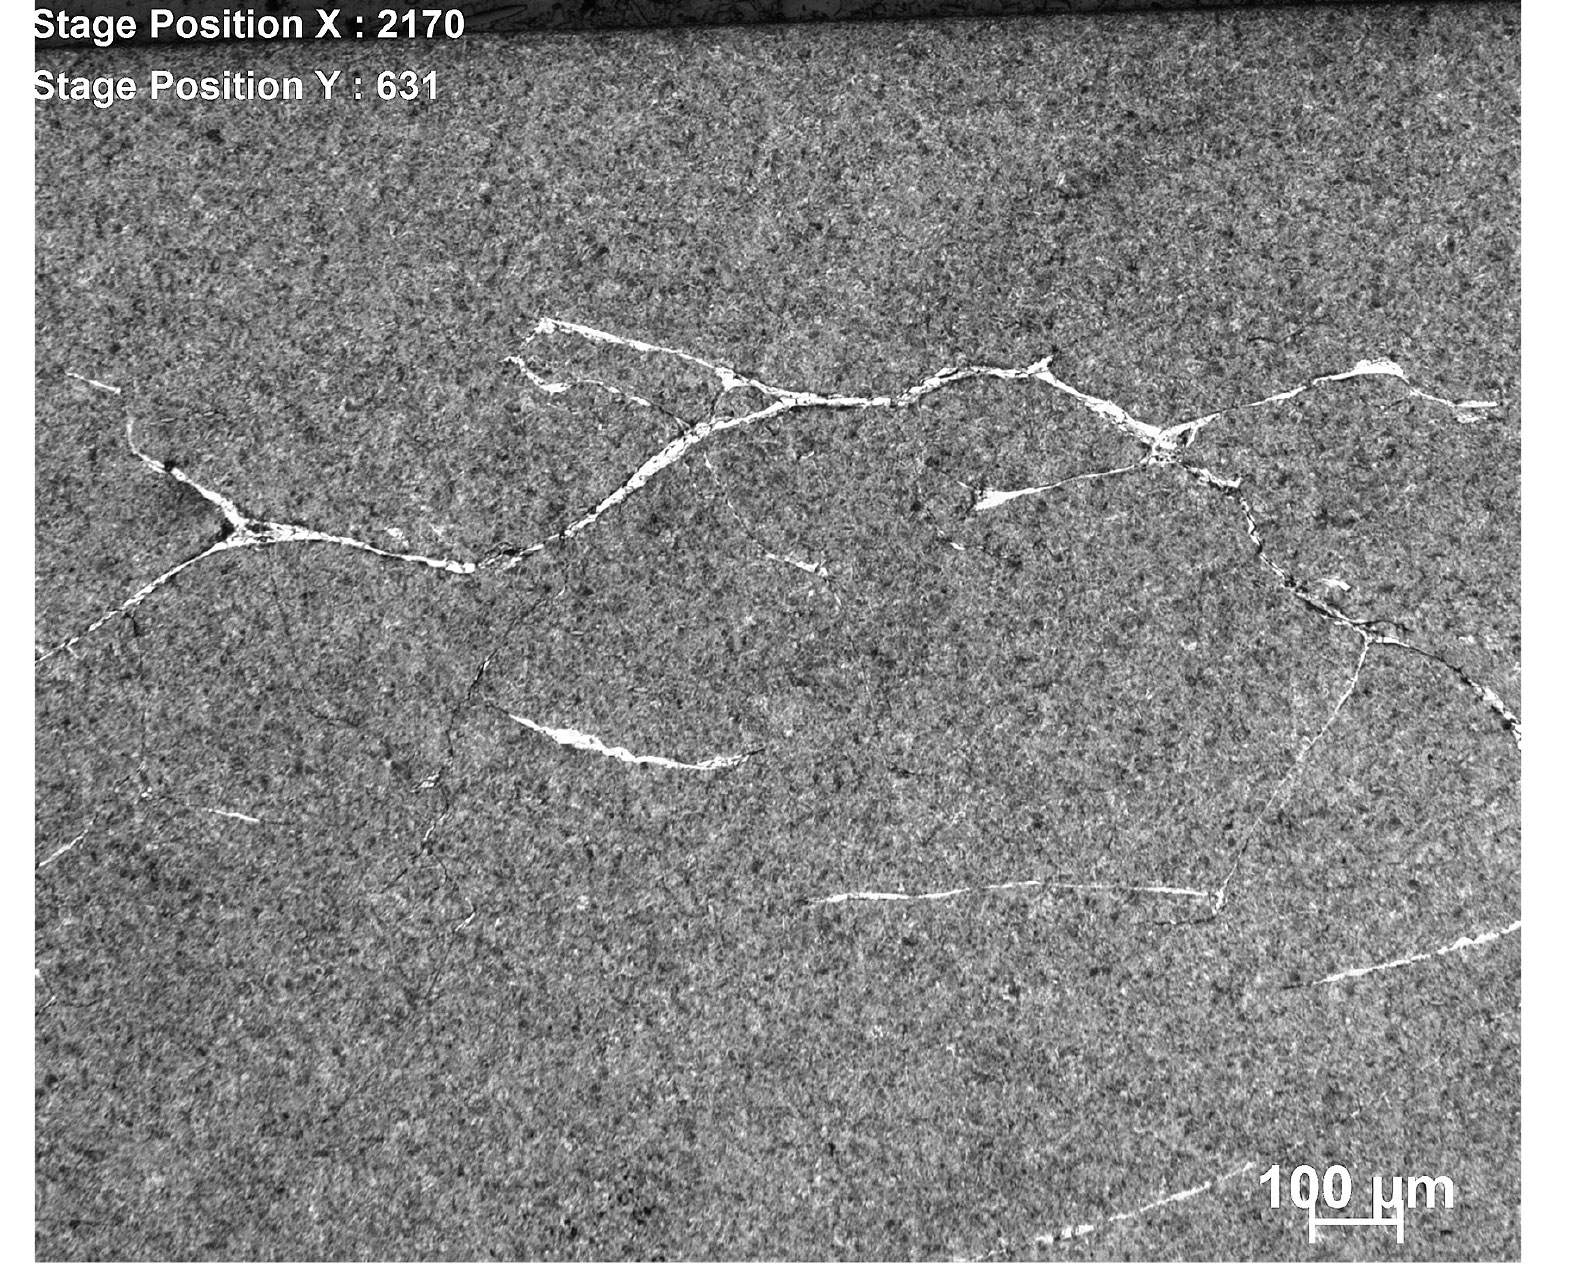 White etching cracks – a consequence, not a root cause of bearing failure |  Evolution